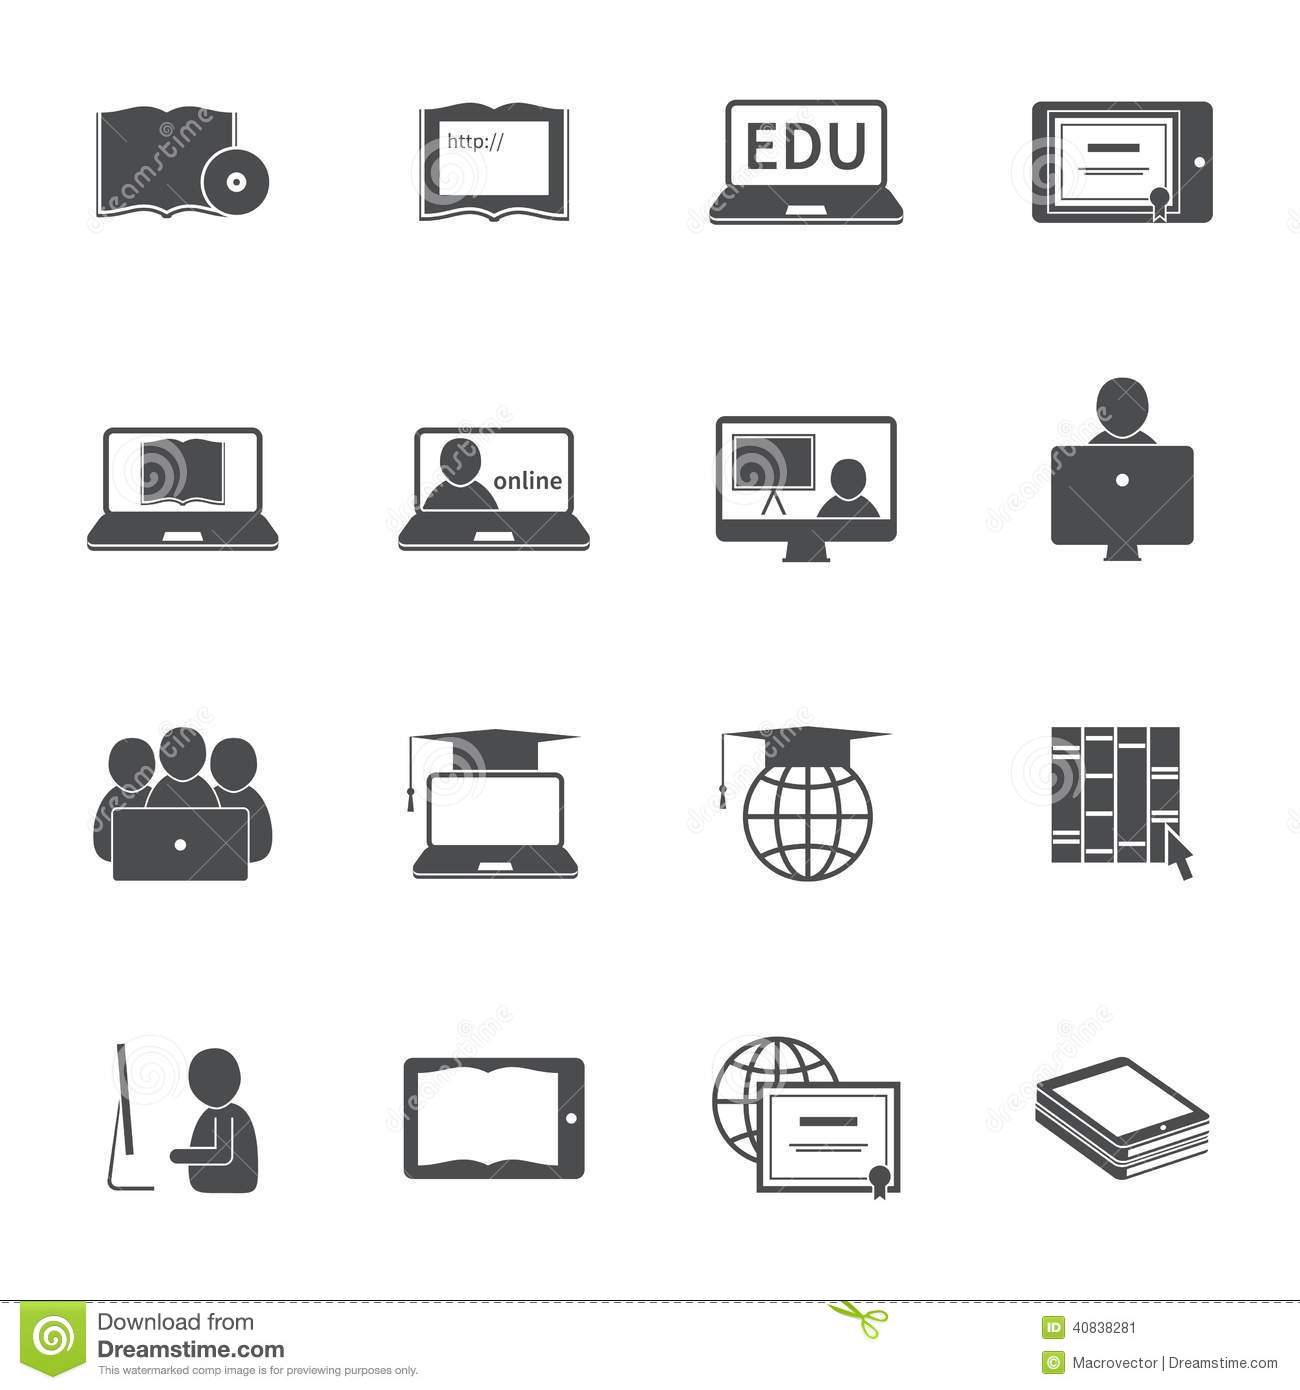 Online Education Icon Set Stock Vector - Image: 40838281